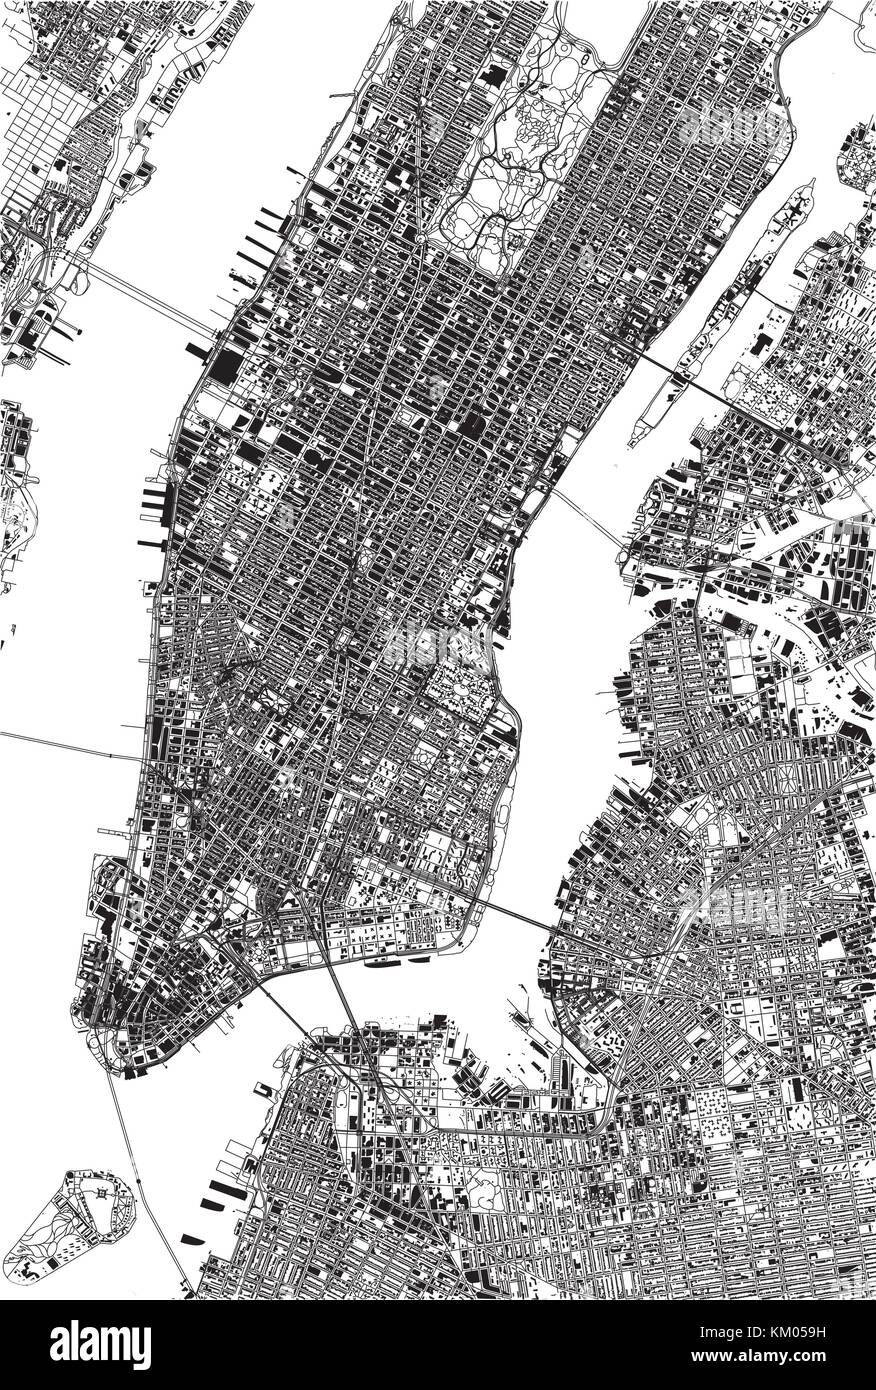 New York map, satellite view, the United States ... Satellite Map Of New York on nighttime satellite map new york, fjords of new york, satellite maps of my house, driving map of new york, traffic map of new york, relief map of new york, statistics of new york, street map of new york, topo map of new york, physical map of new york, road map of new york, satellite map new york state, virtual tour of new york, world map of new york, google map of new york, political map of new york, news of new york, satellite view of malden ny, green map of new york, ariel map of new york,